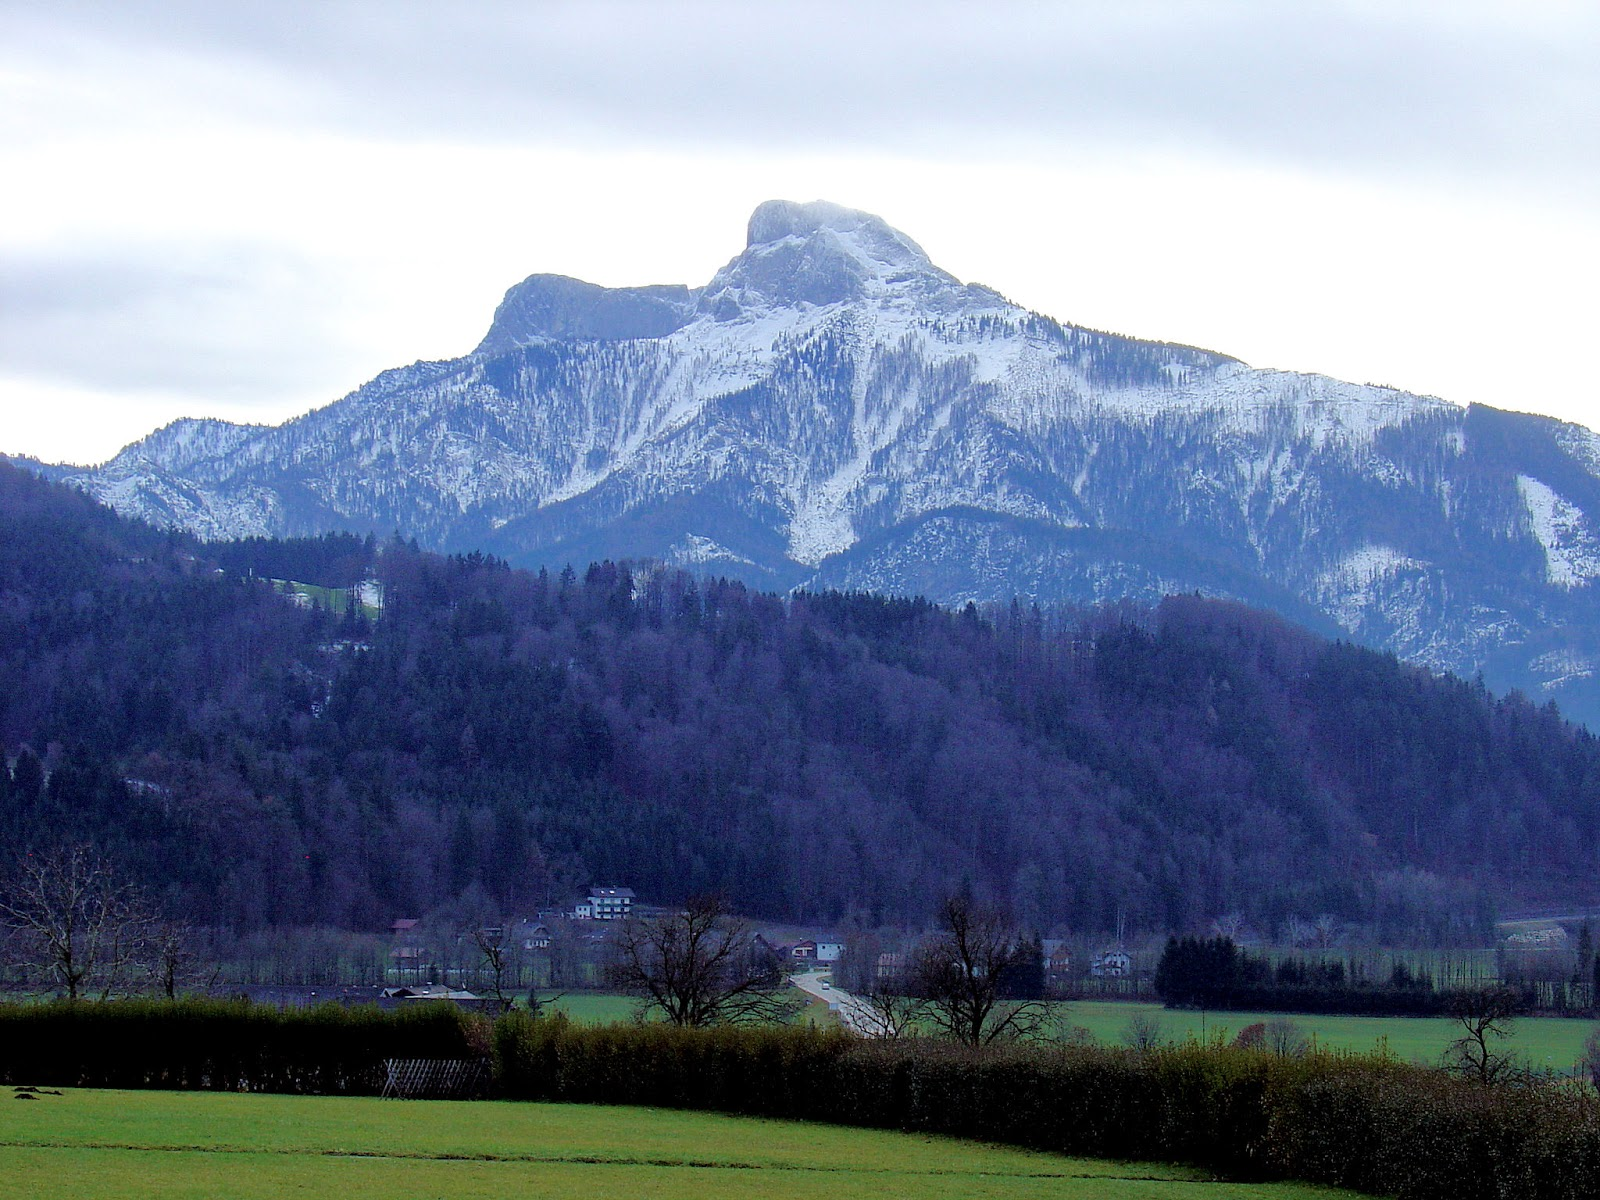 En route to Salzburg, Austria, we stopped at a rest area for a wonderful preview of the Alps!